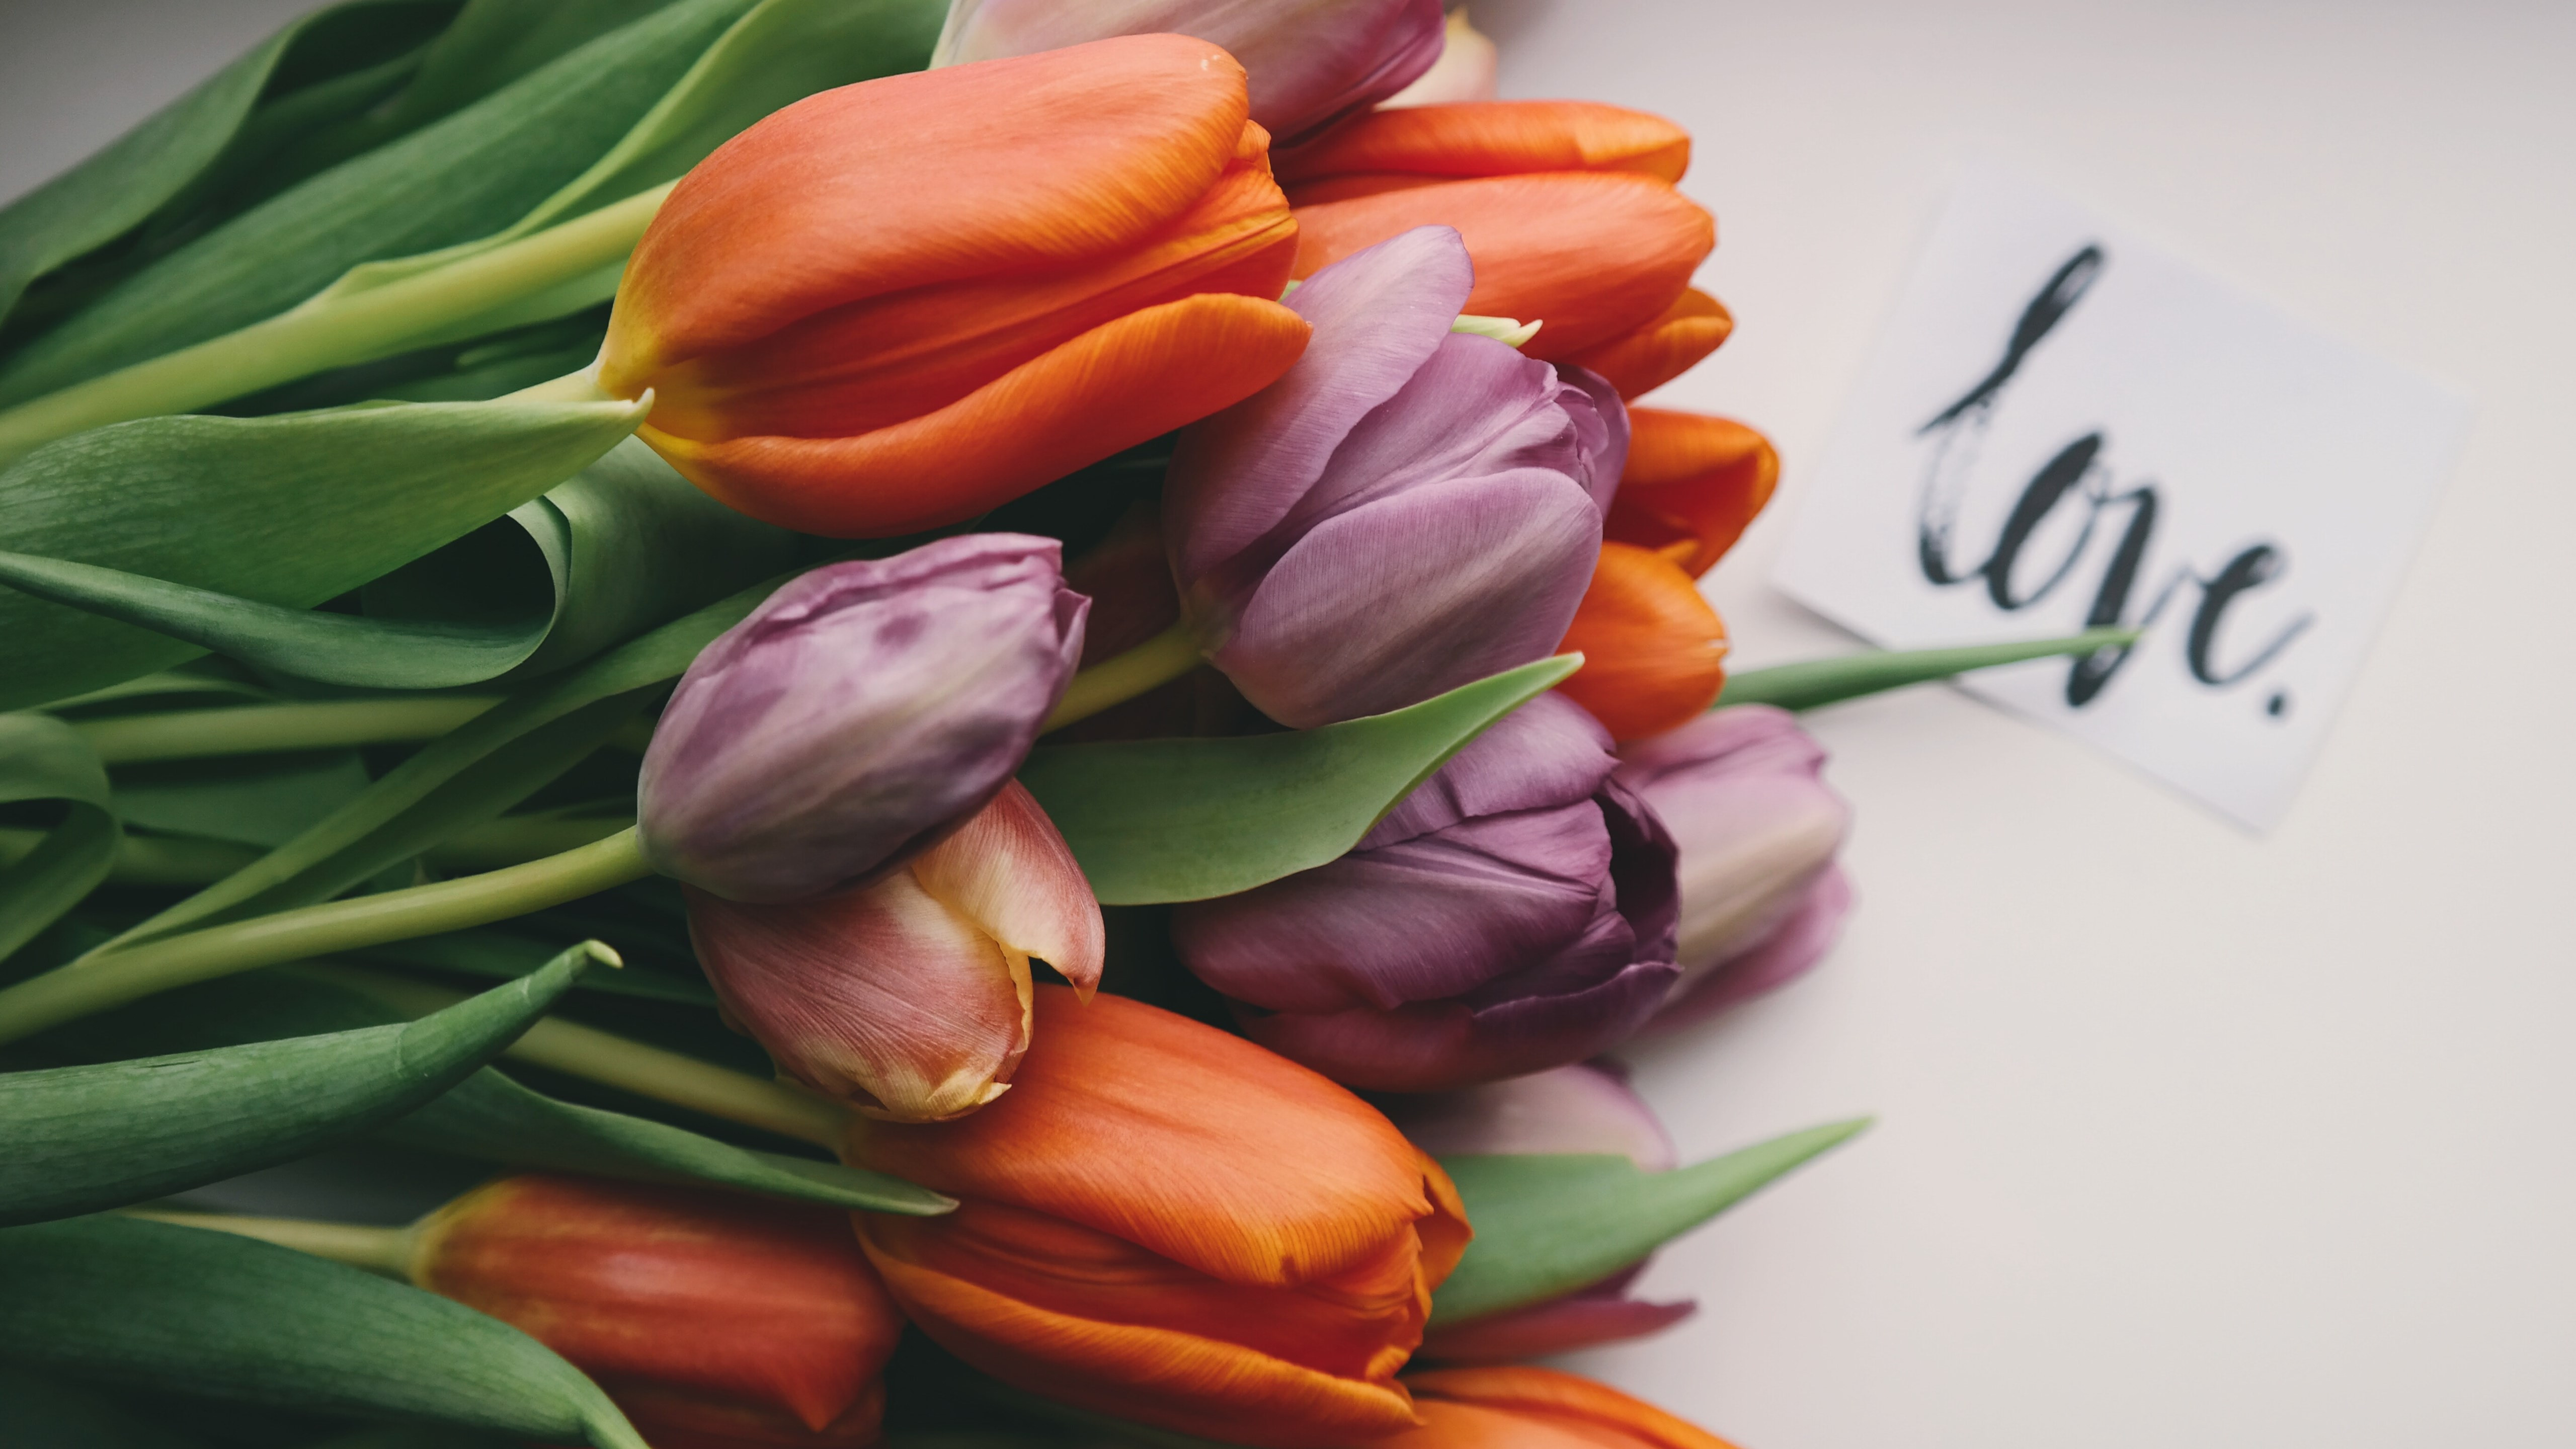 Tulips with love | 5120x2880 wallpaper